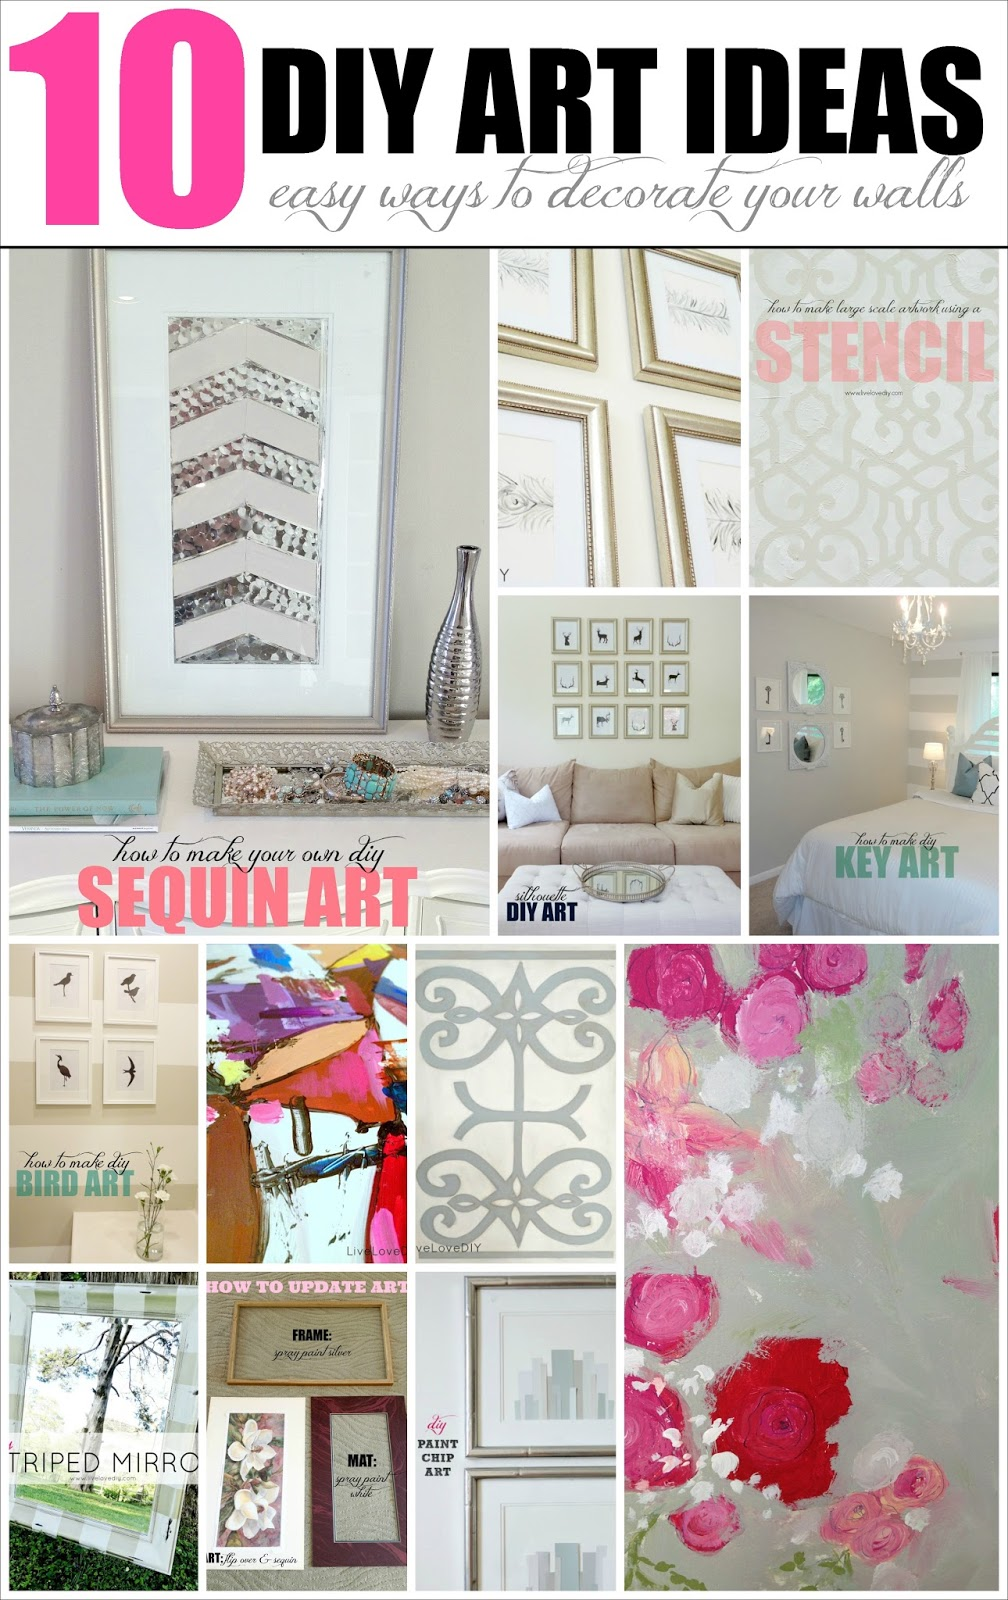 Bedroom wall decor ideas diy - 10 Diy Art Ideas Easy Ways To Decorate Your Walls